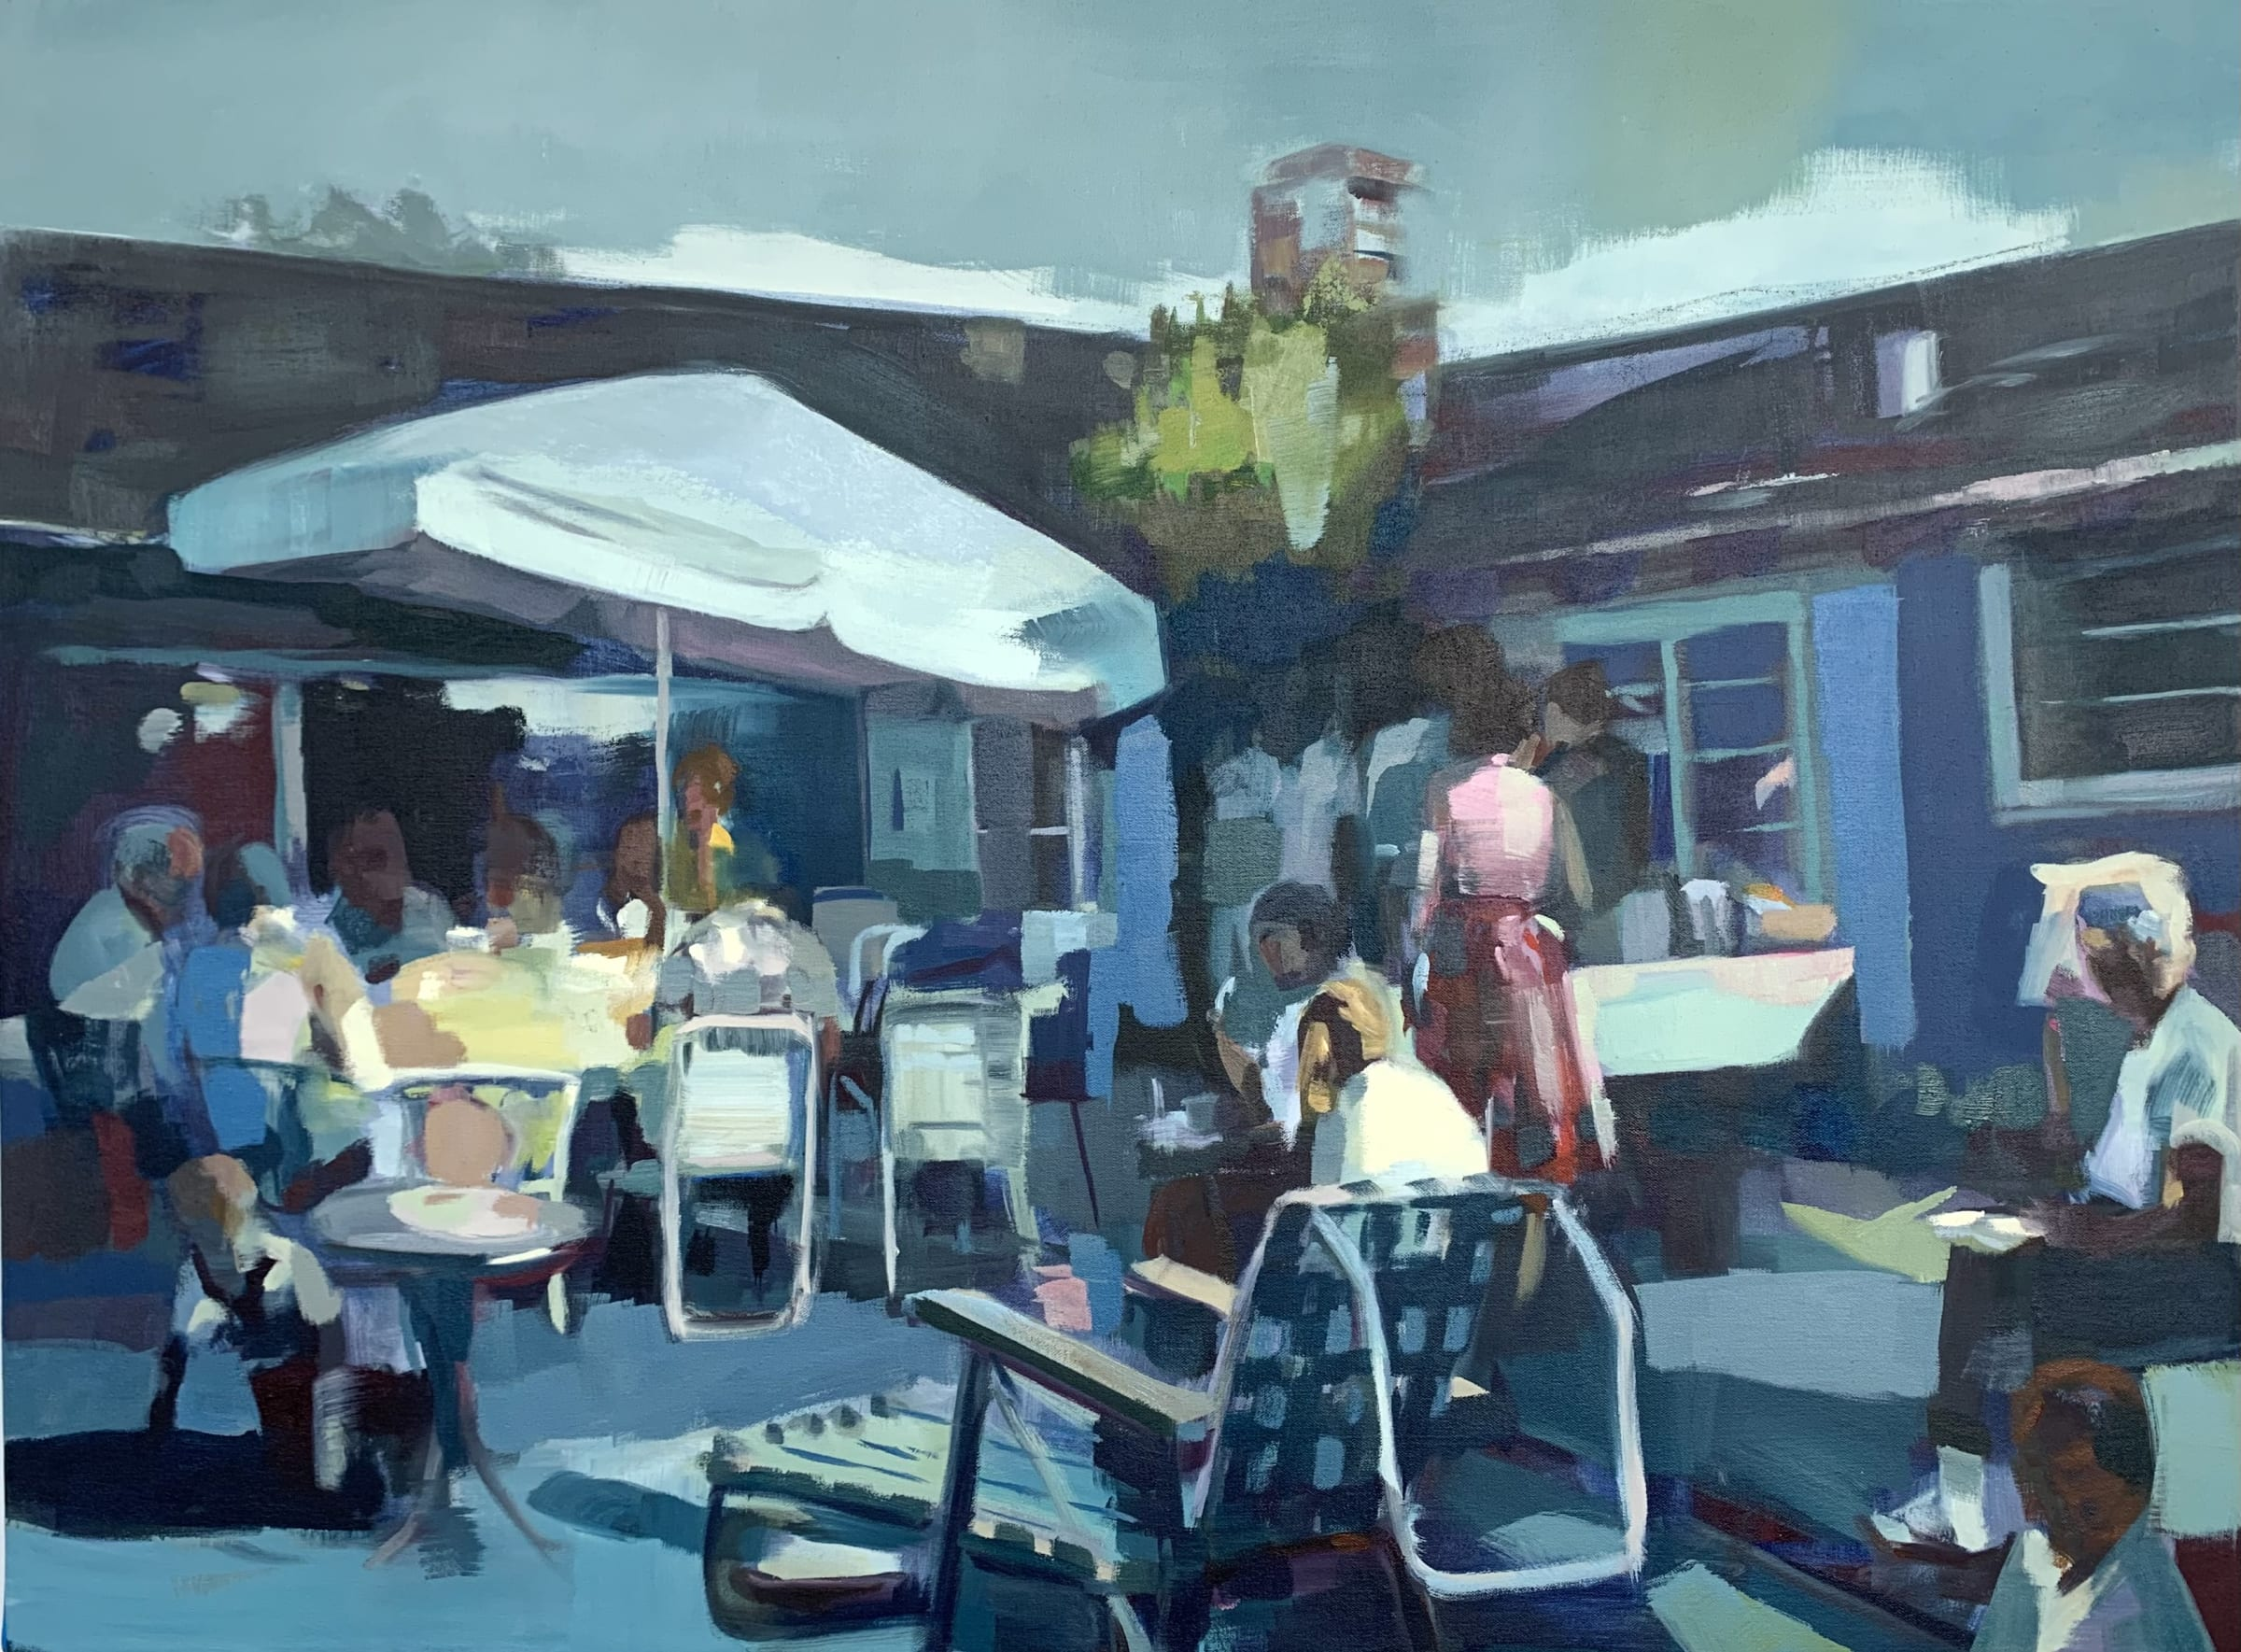 """<span class=""""link fancybox-details-link""""><a href=""""/artists/89-kirsten-tradowsky/works/1546-kirsten-tradowsky-yesterday-s-party/"""">View Detail Page</a></span><div class=""""artist""""><strong>Kirsten Tradowsky</strong></div> <div class=""""title""""><em>Yesterday's Party</em></div> <div class=""""medium"""">Oil on canvas</div> <div class=""""dimensions"""">30 x 40 inches</div>"""